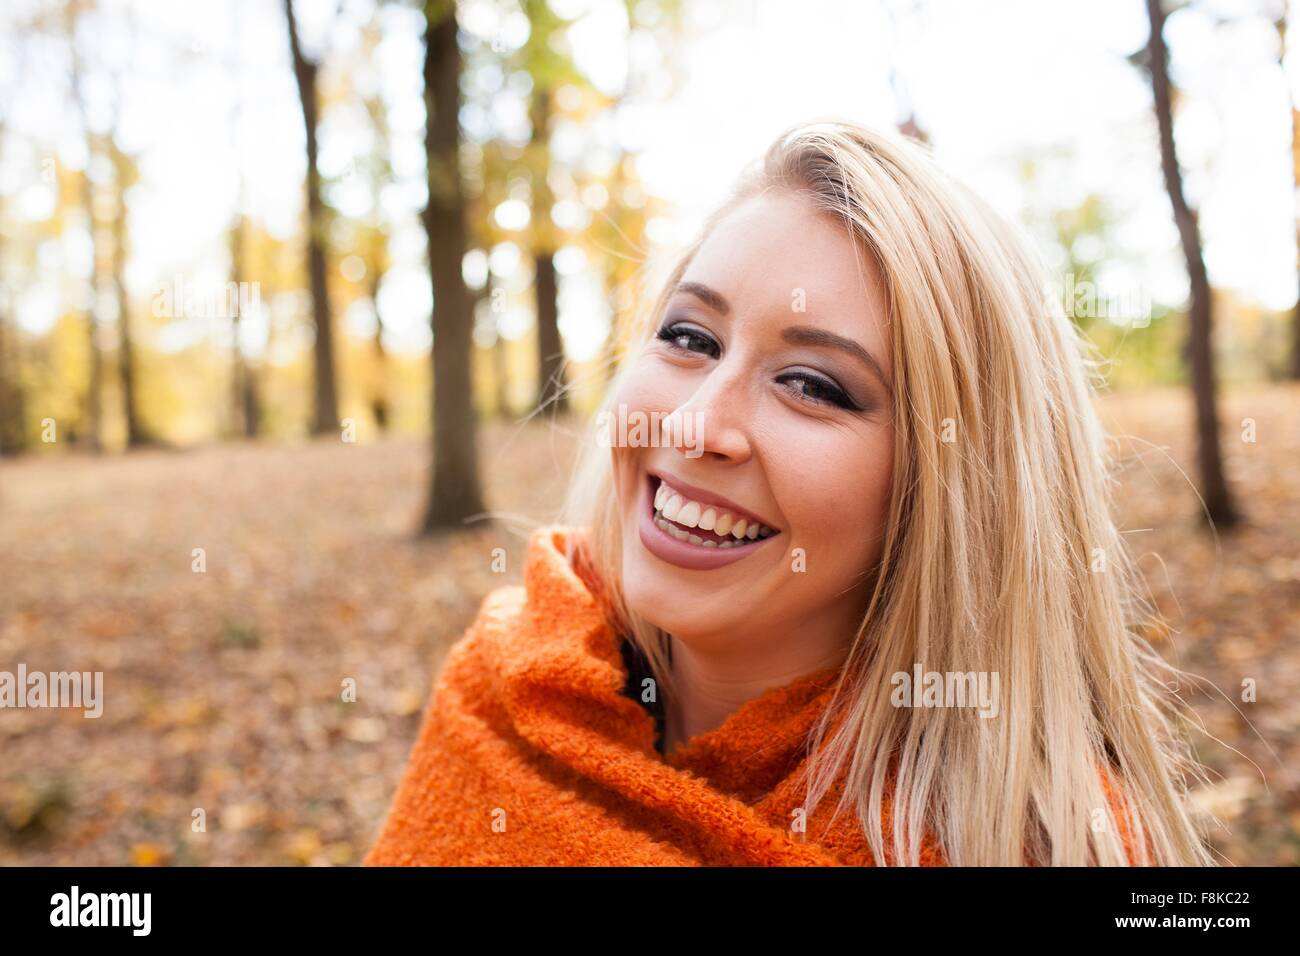 Portrait of young woman with long blond hair wrapped in blanket in autumn forest - Stock Image